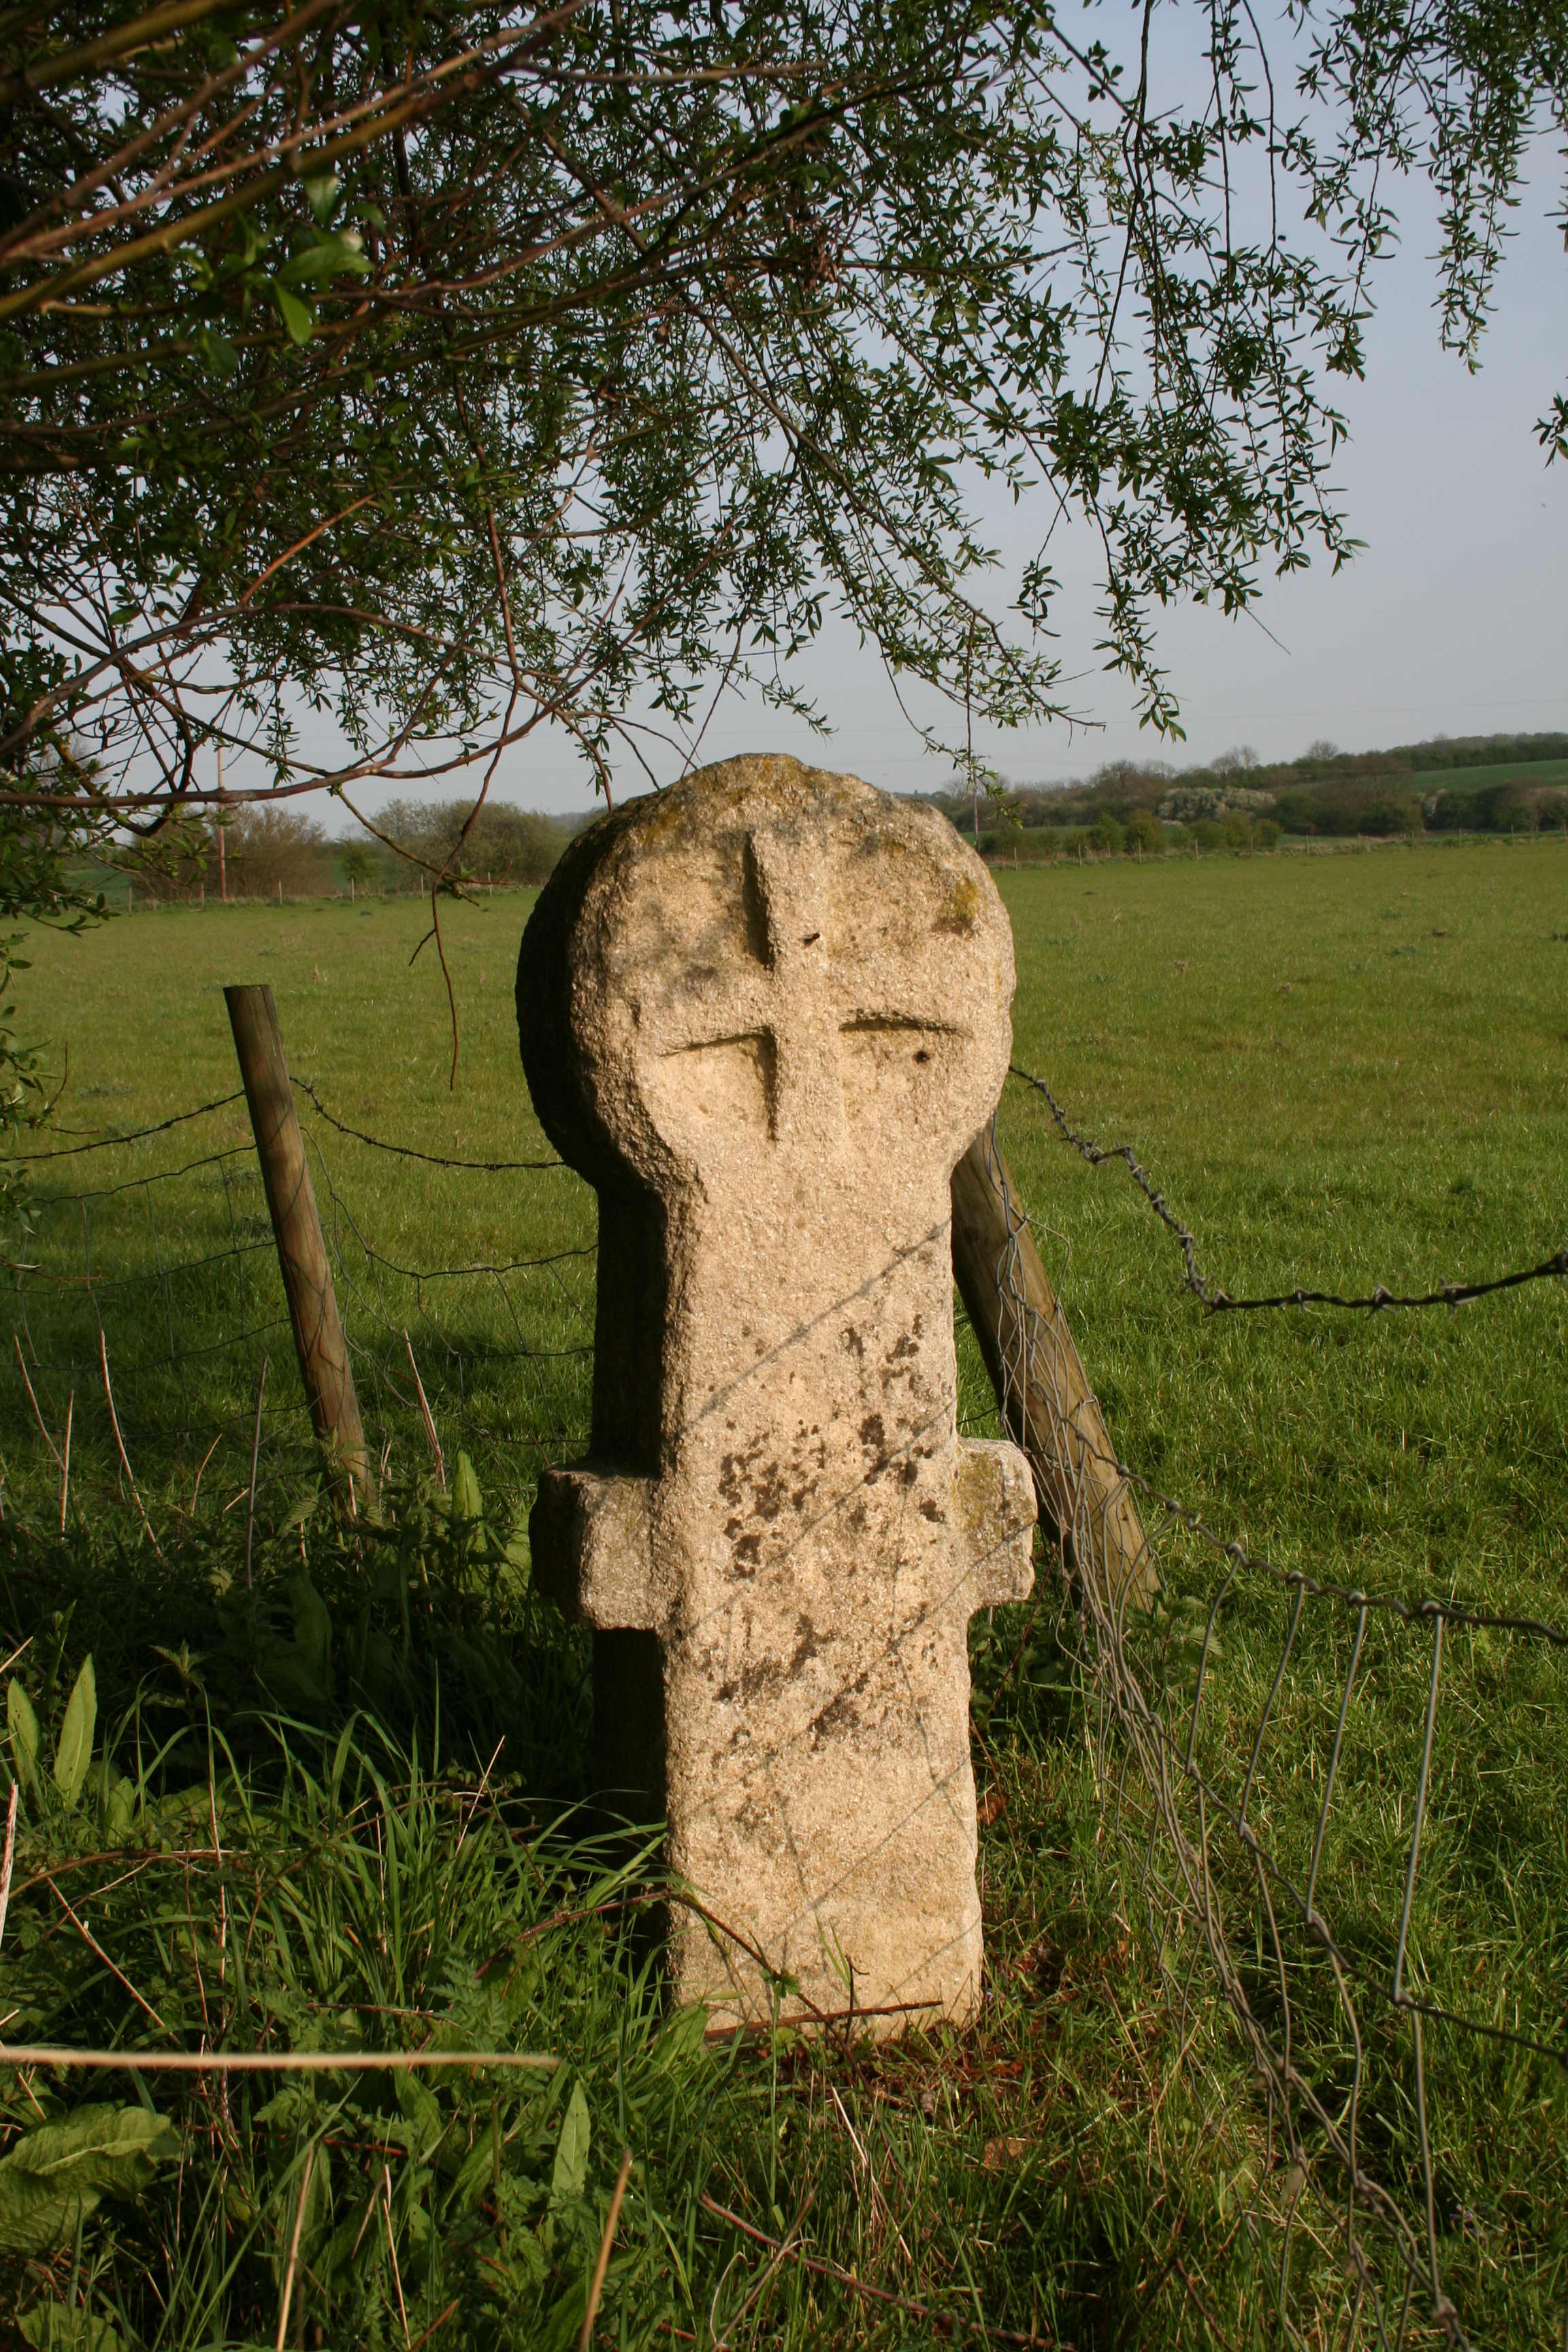 A photograph of a stone cross, standing in a grassy field, under a tree. There is another, engraved cross at the top of the pillar.